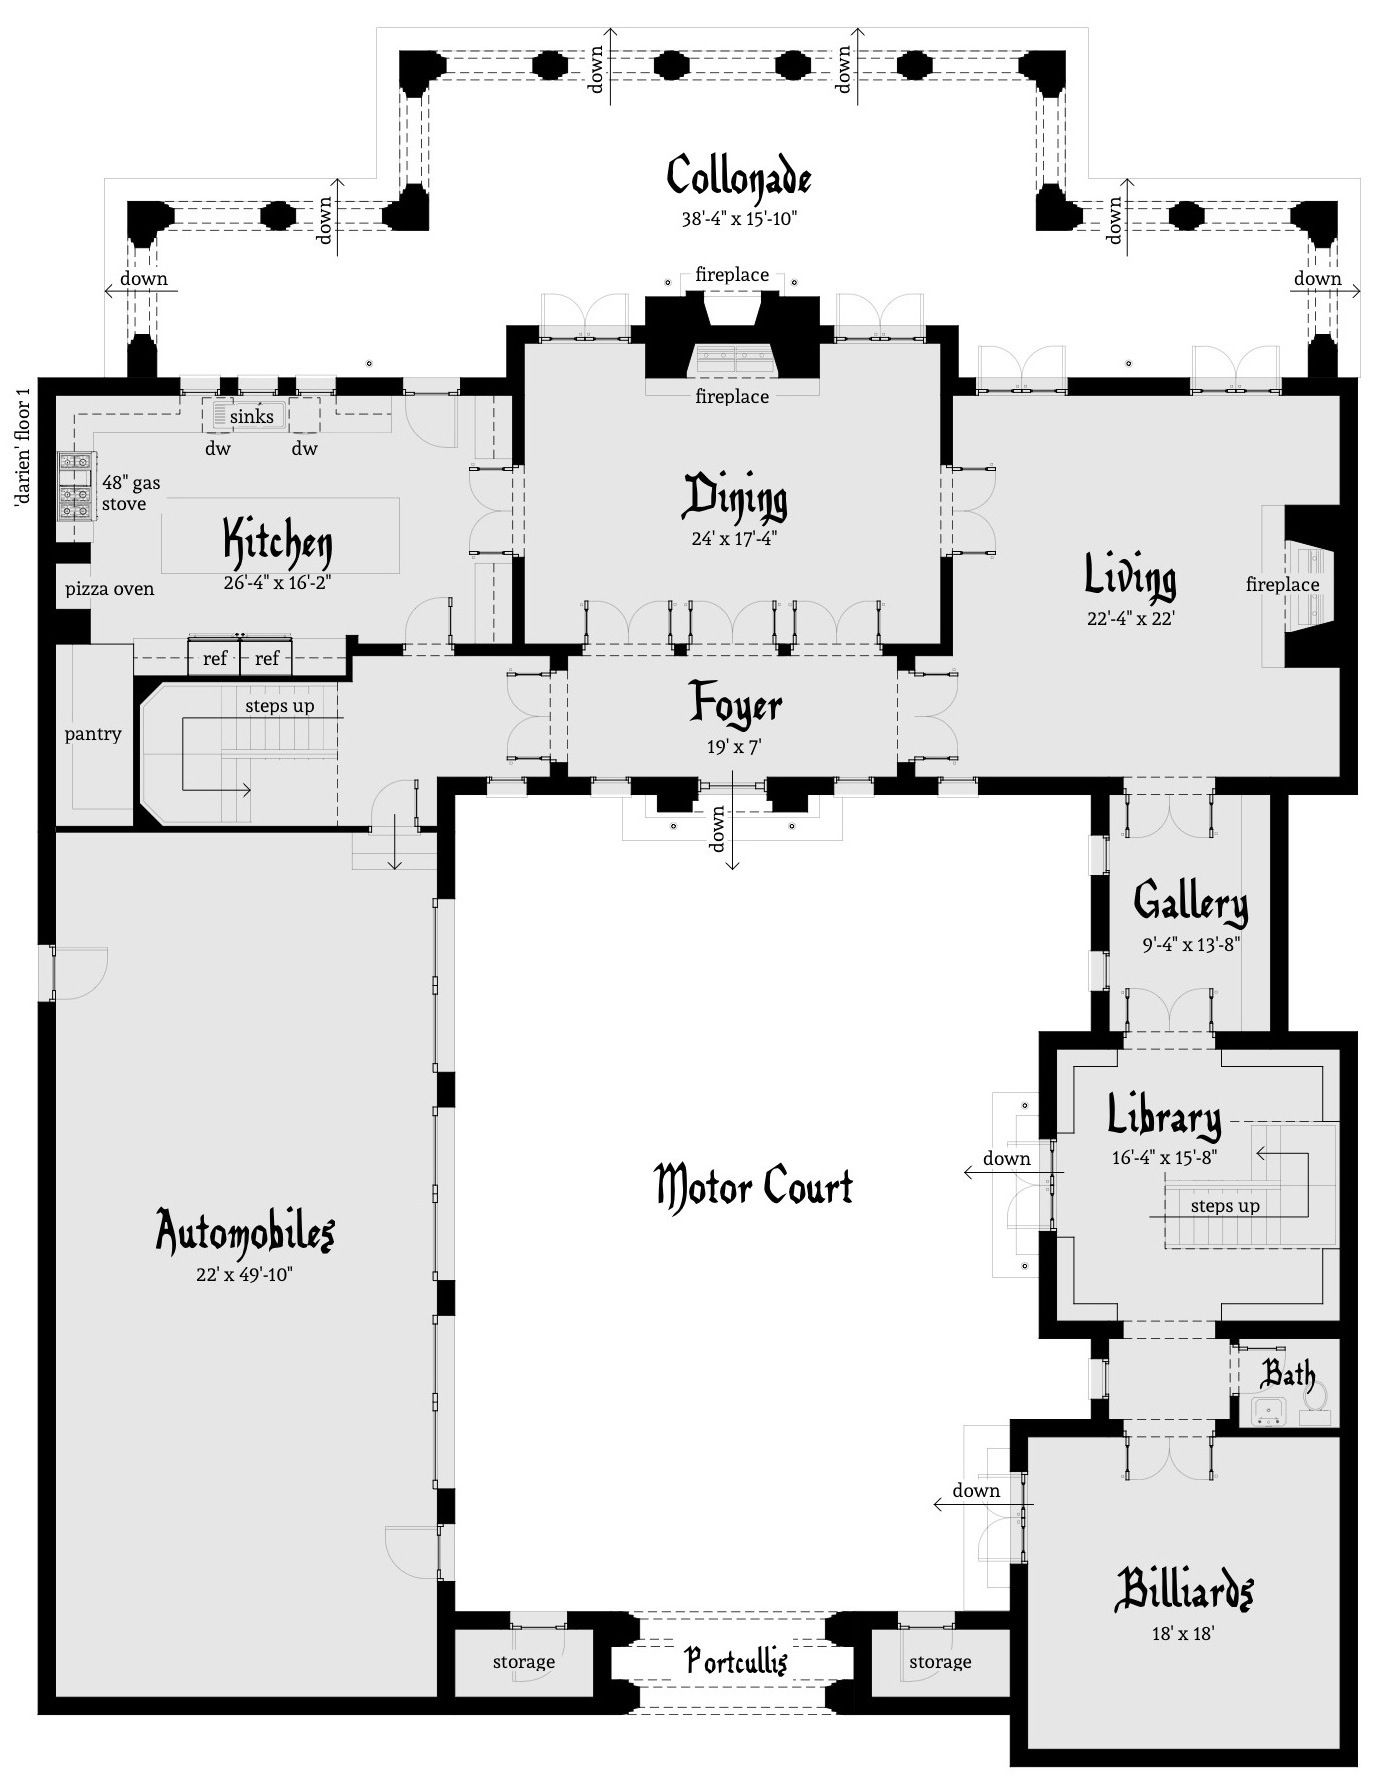 Dantyree Com Nbspthis Website Is For Sale Nbspdantyree Resources And Information Castle House Plans Castle Floor Plan Castle Plans